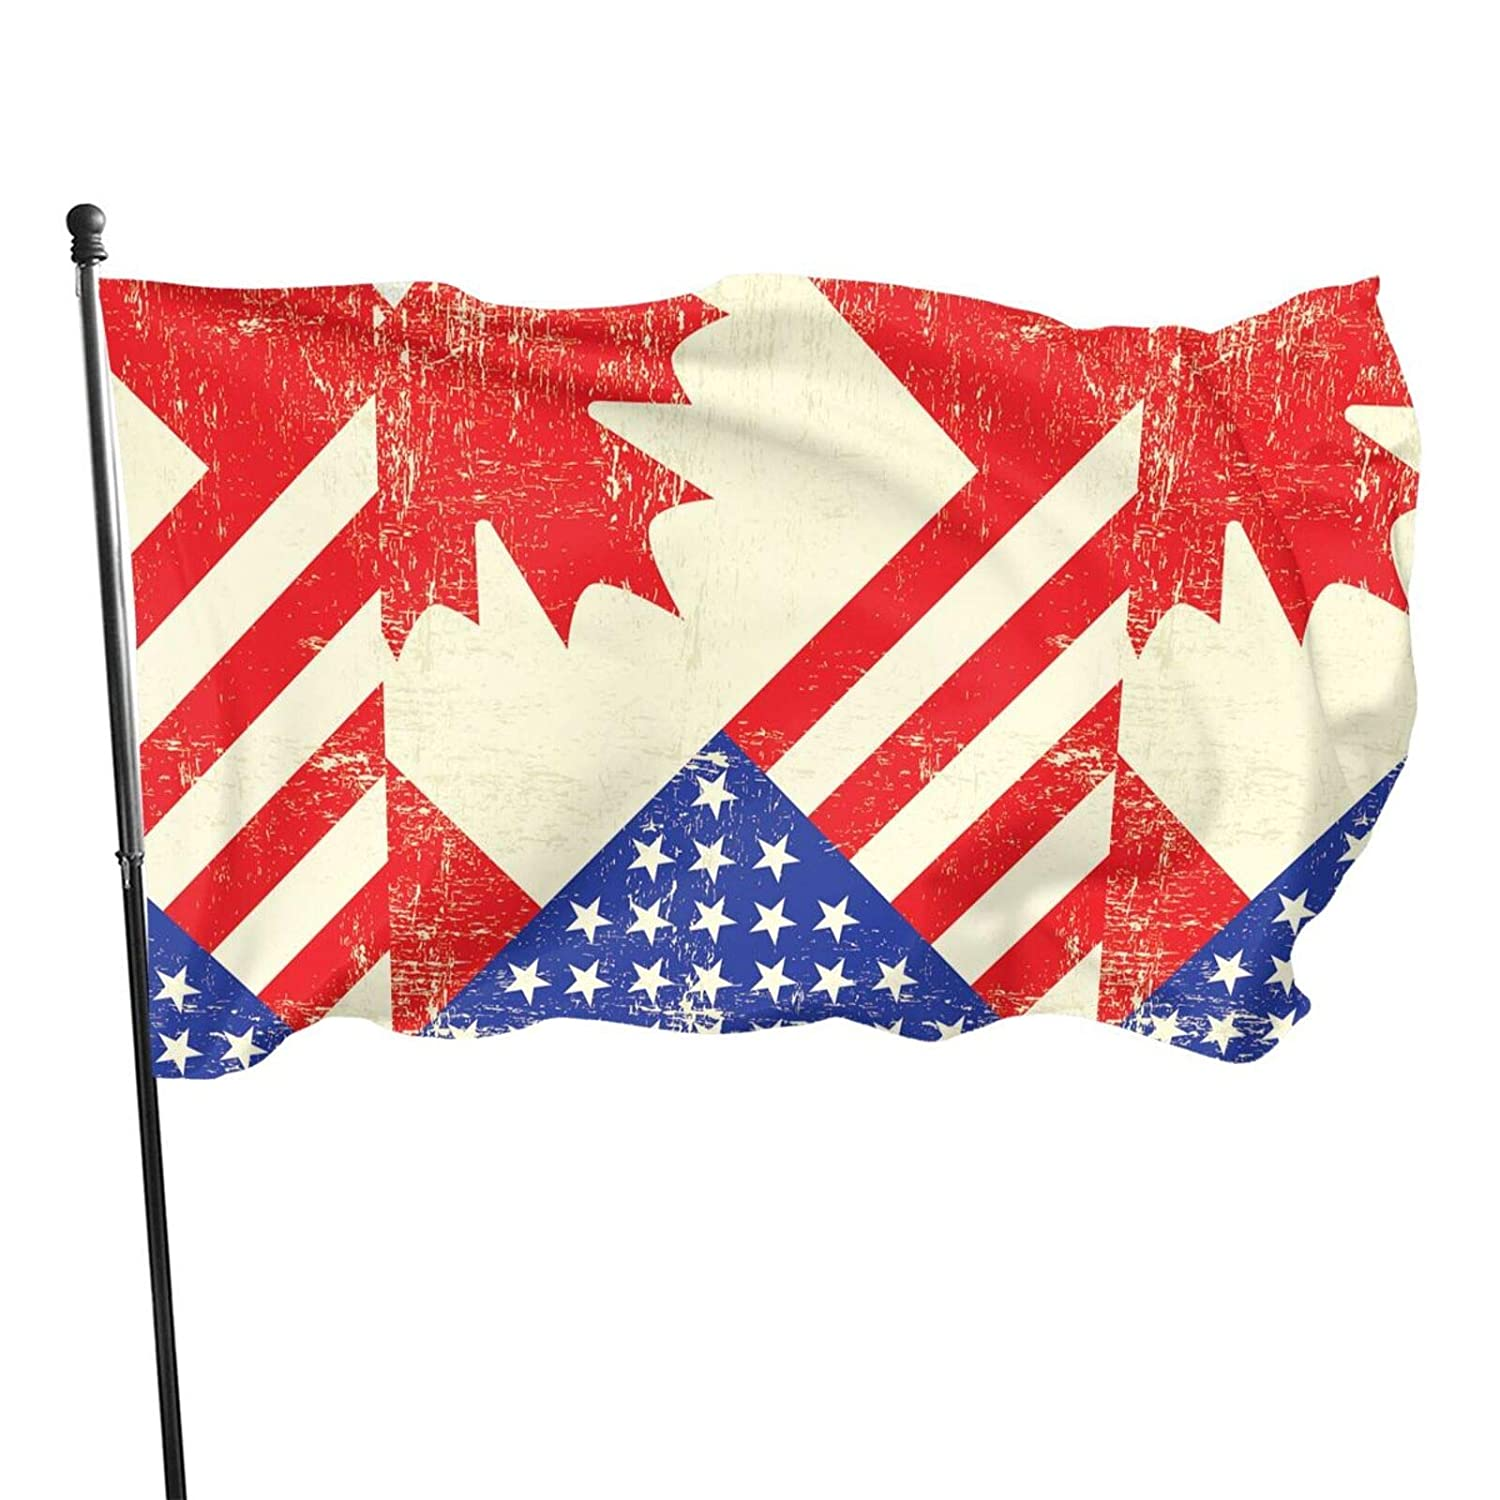 Outside Banner Garden Flags Canada America Flag Flags 3X5 Ft House Yard Porch Lawn Sign Outdoor DÉCor Single-Sided With Metal Grommets Much Thicker More Durable